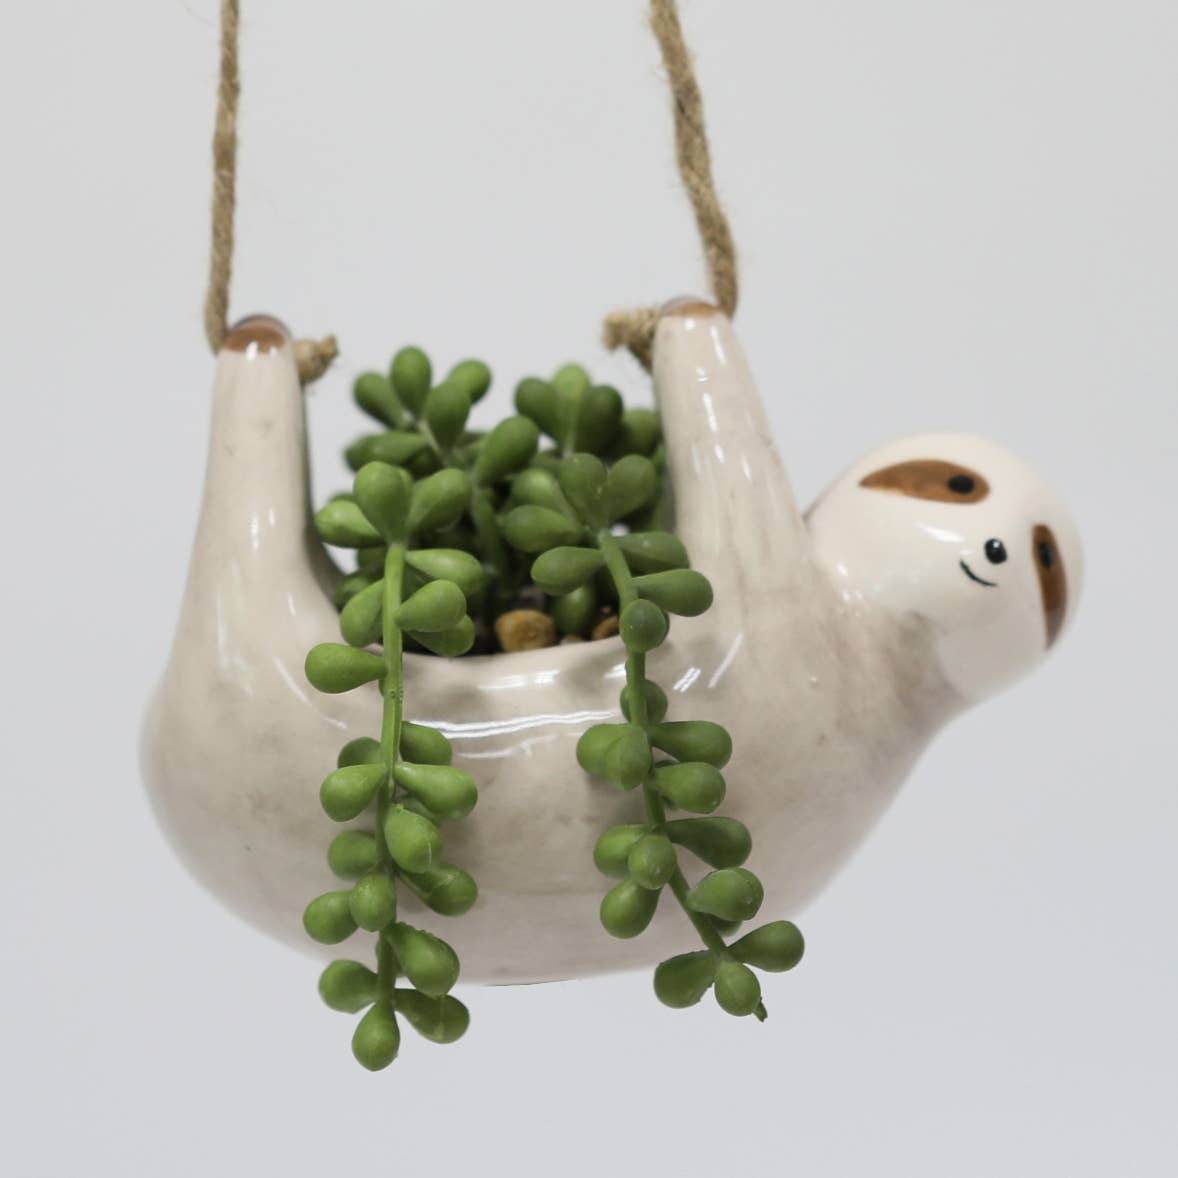 Flora Bunda: Hanging Sloth with Faux String of Pearls